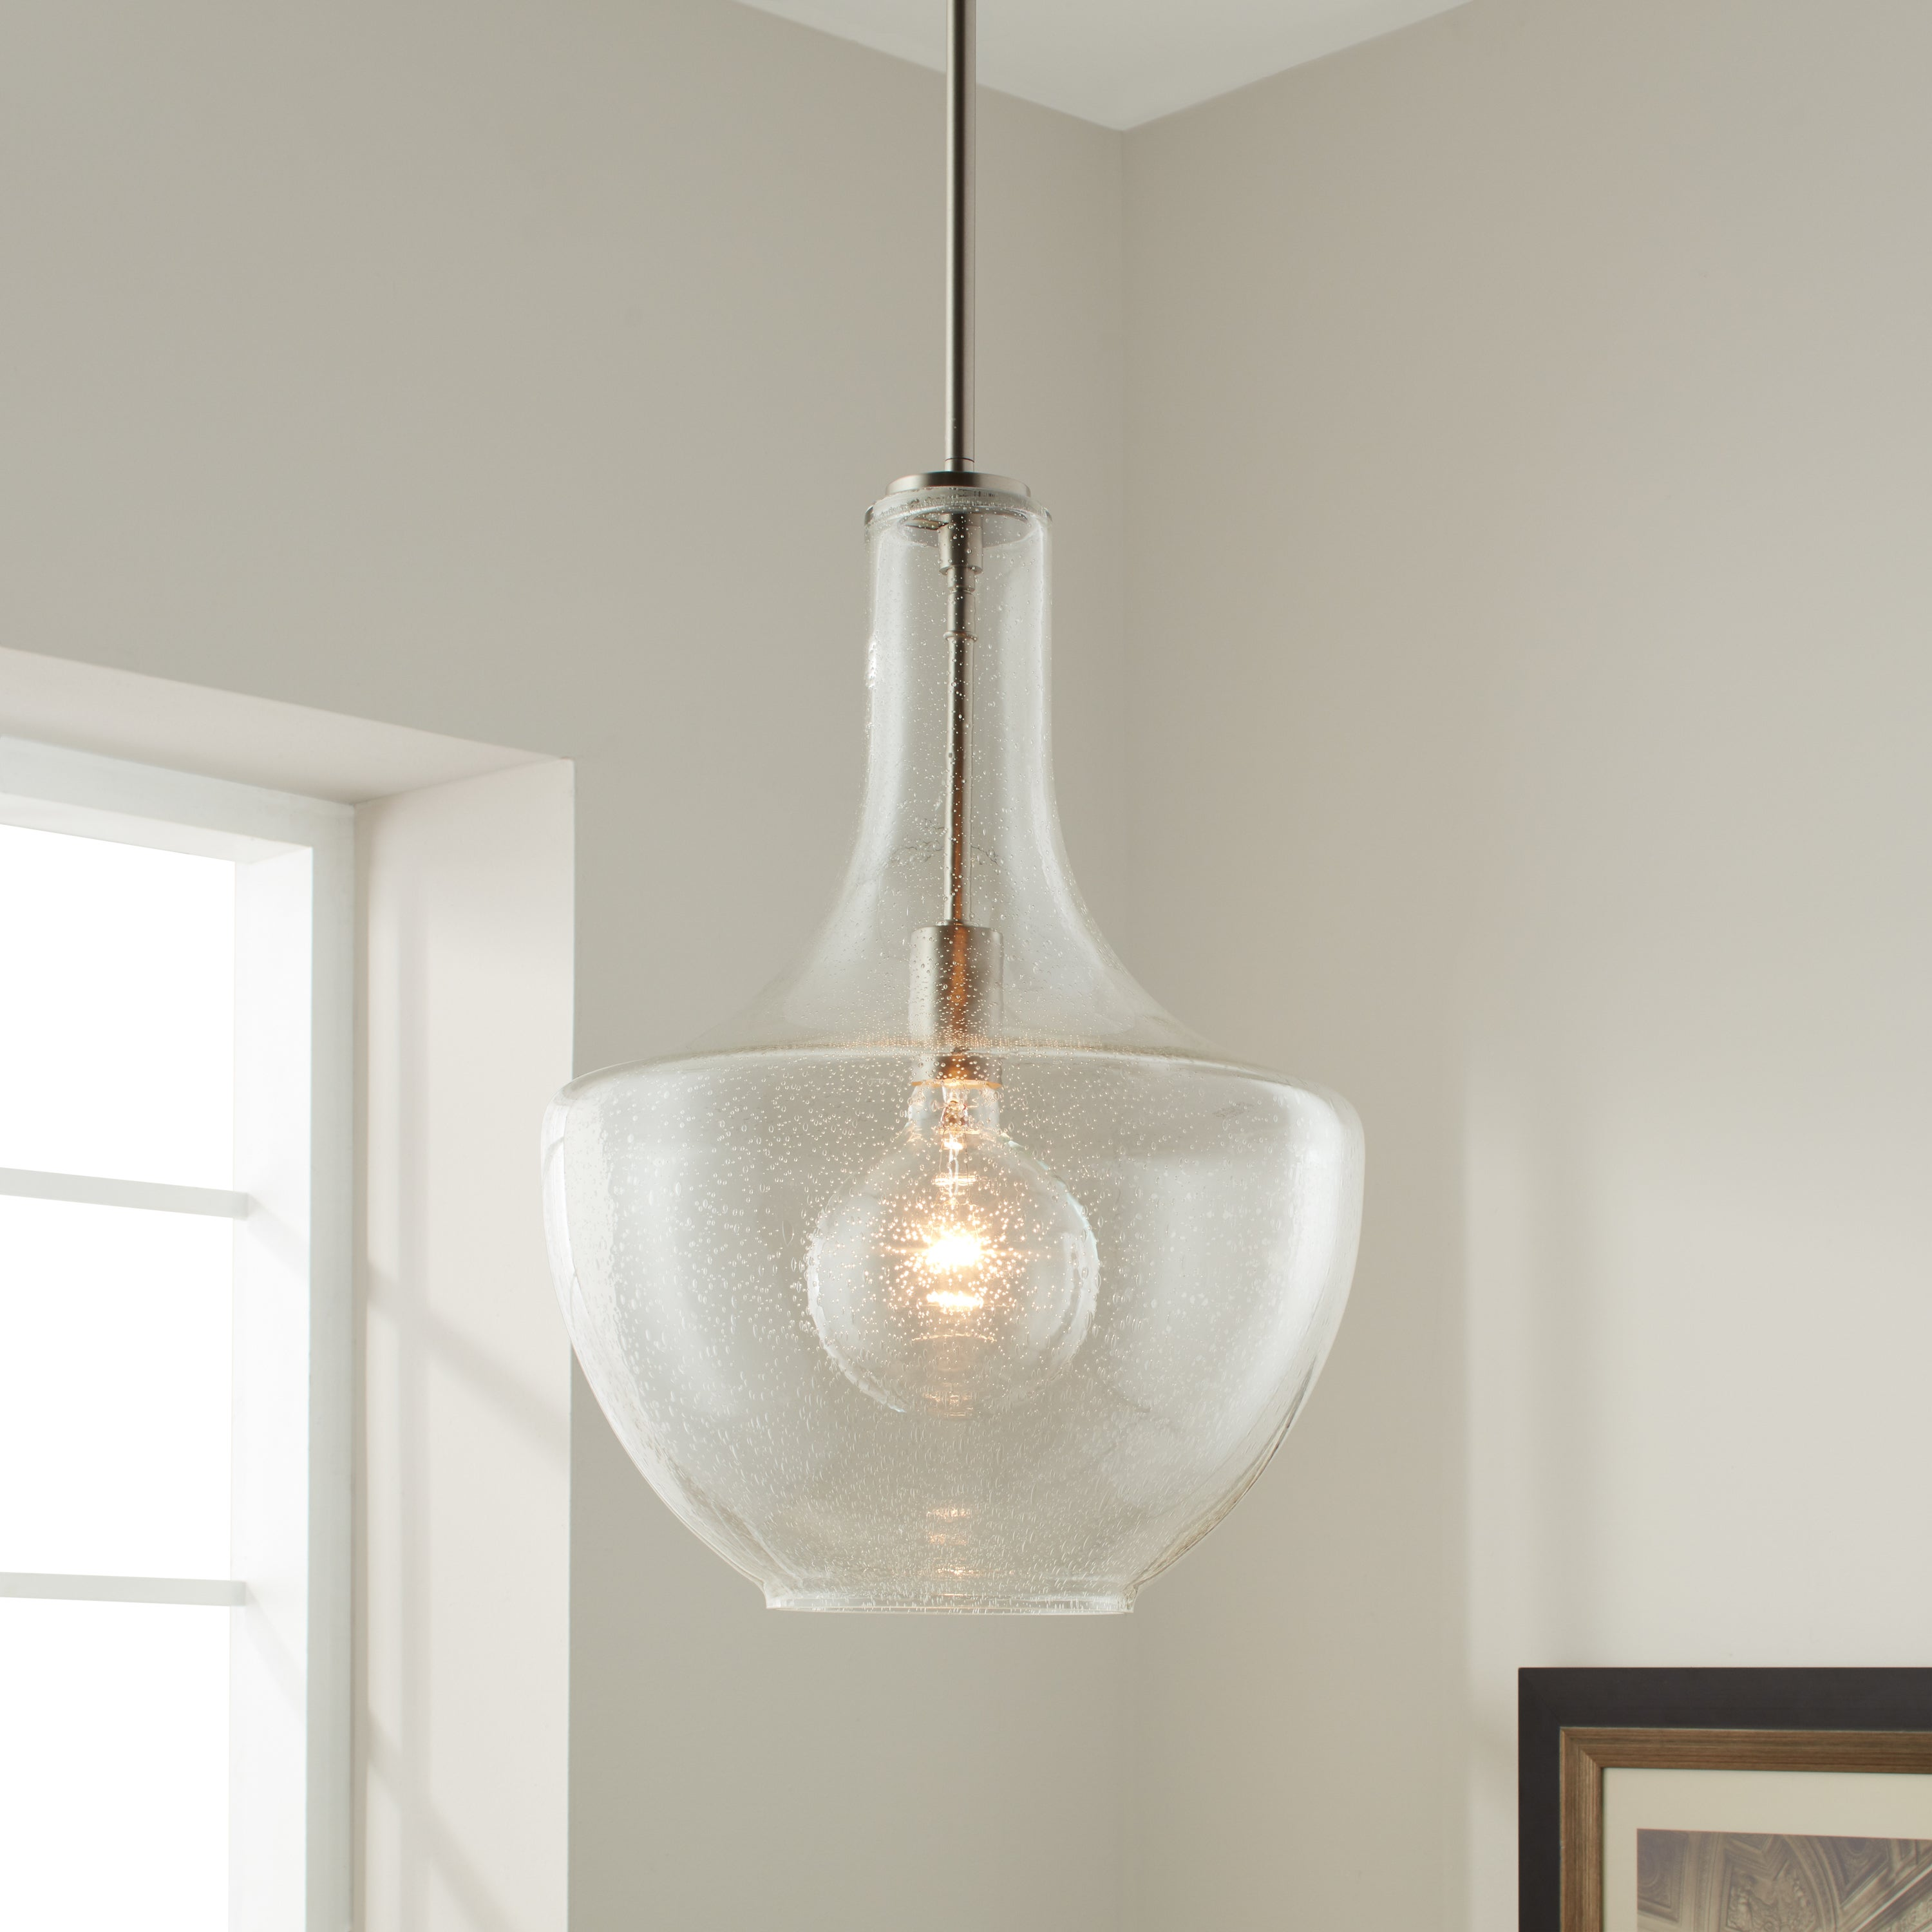 Kichler Lighting Everly Collection 1 Light Brushed Nickel Pendant 13 75 Inch Diameter 20 X